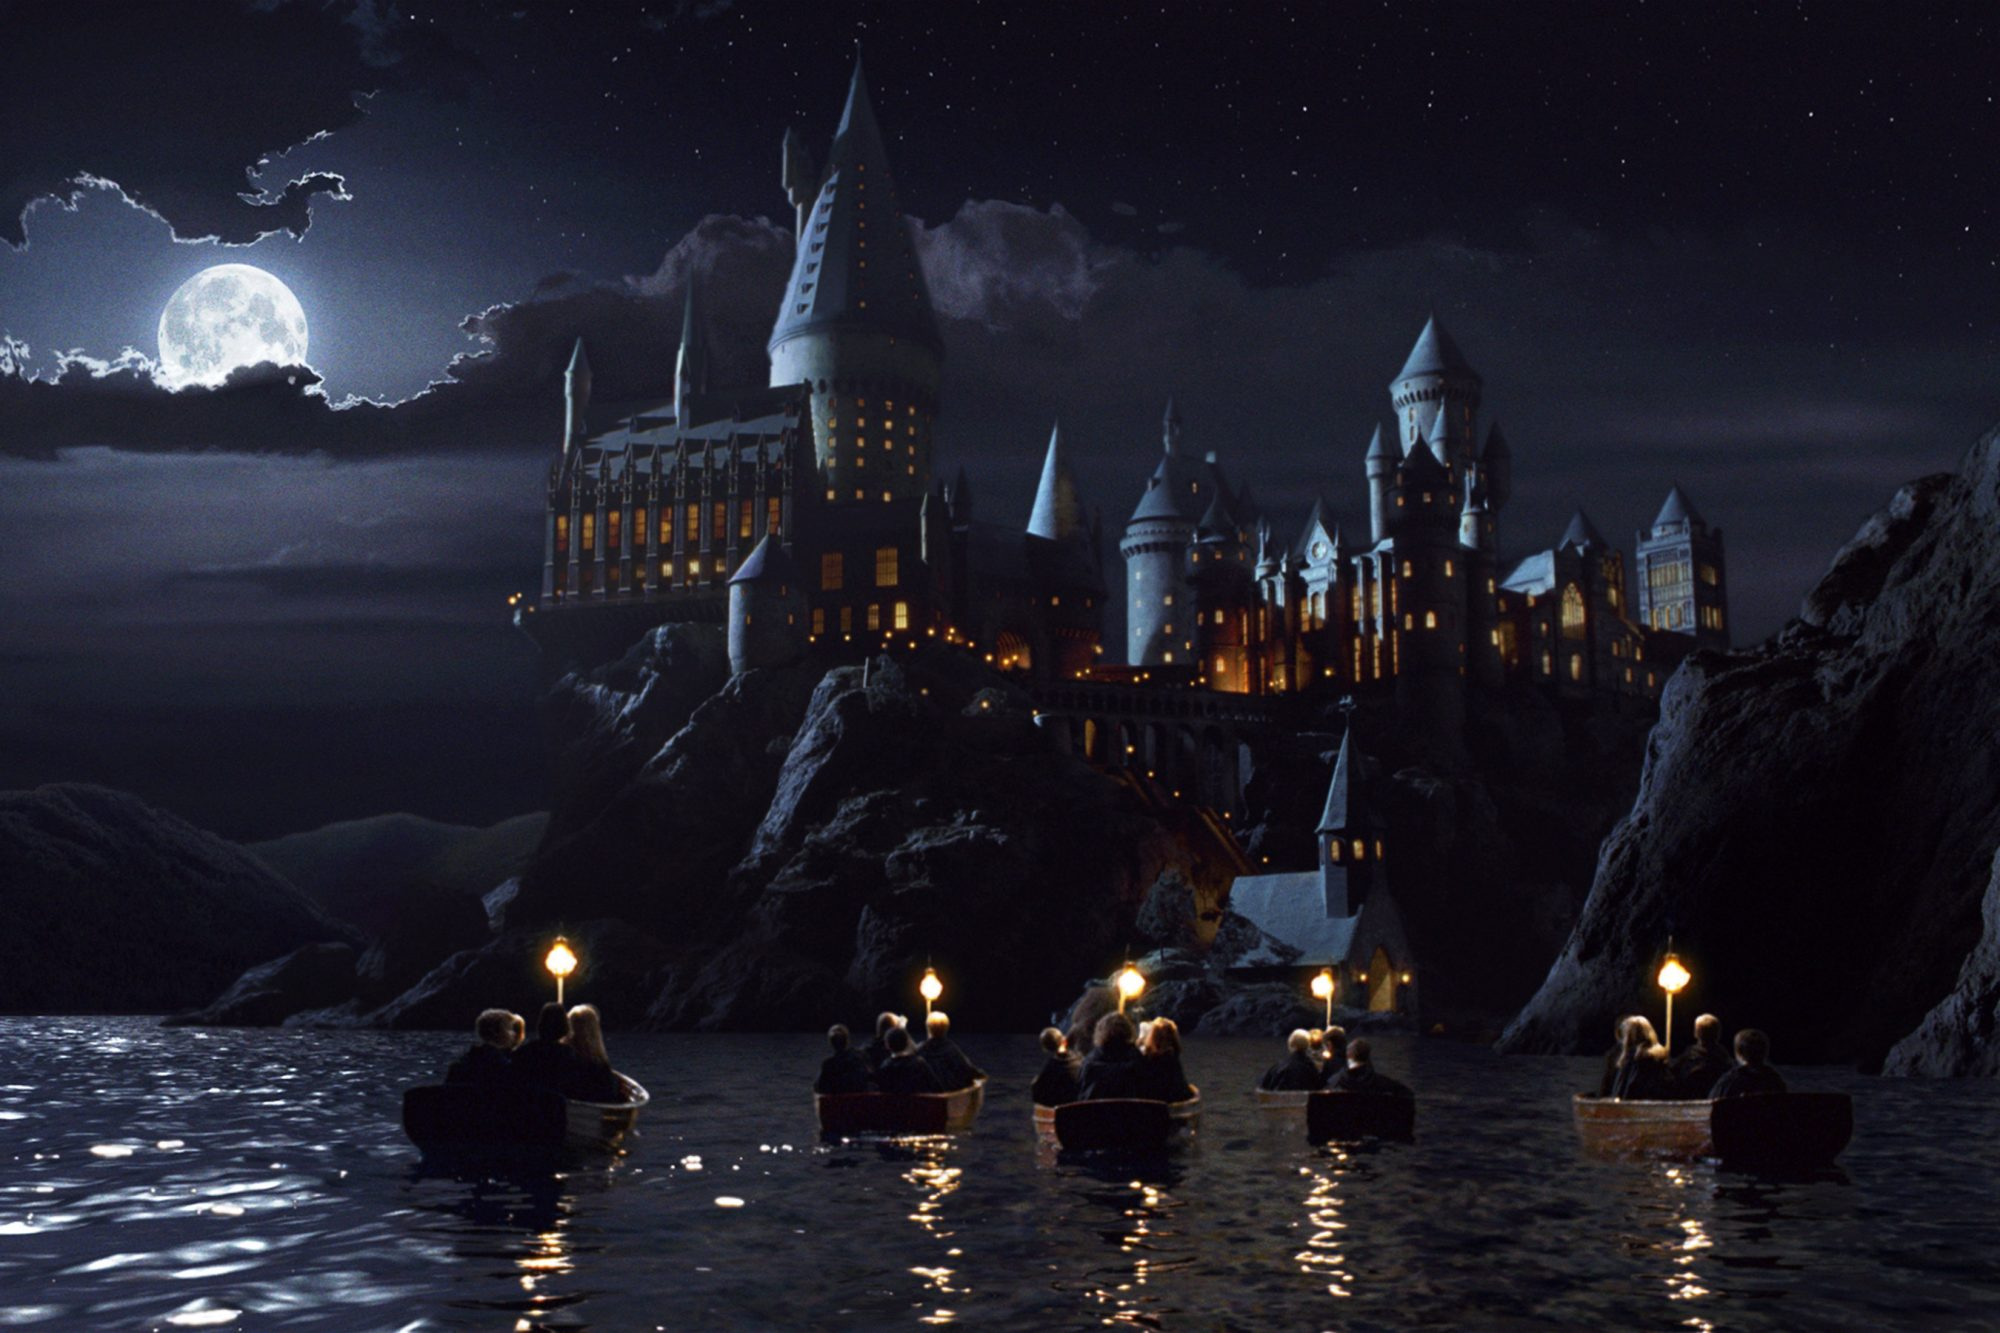 Harry Potter and the Sorcerer's Stone (2001)Students arrive at Hogwarts Castle